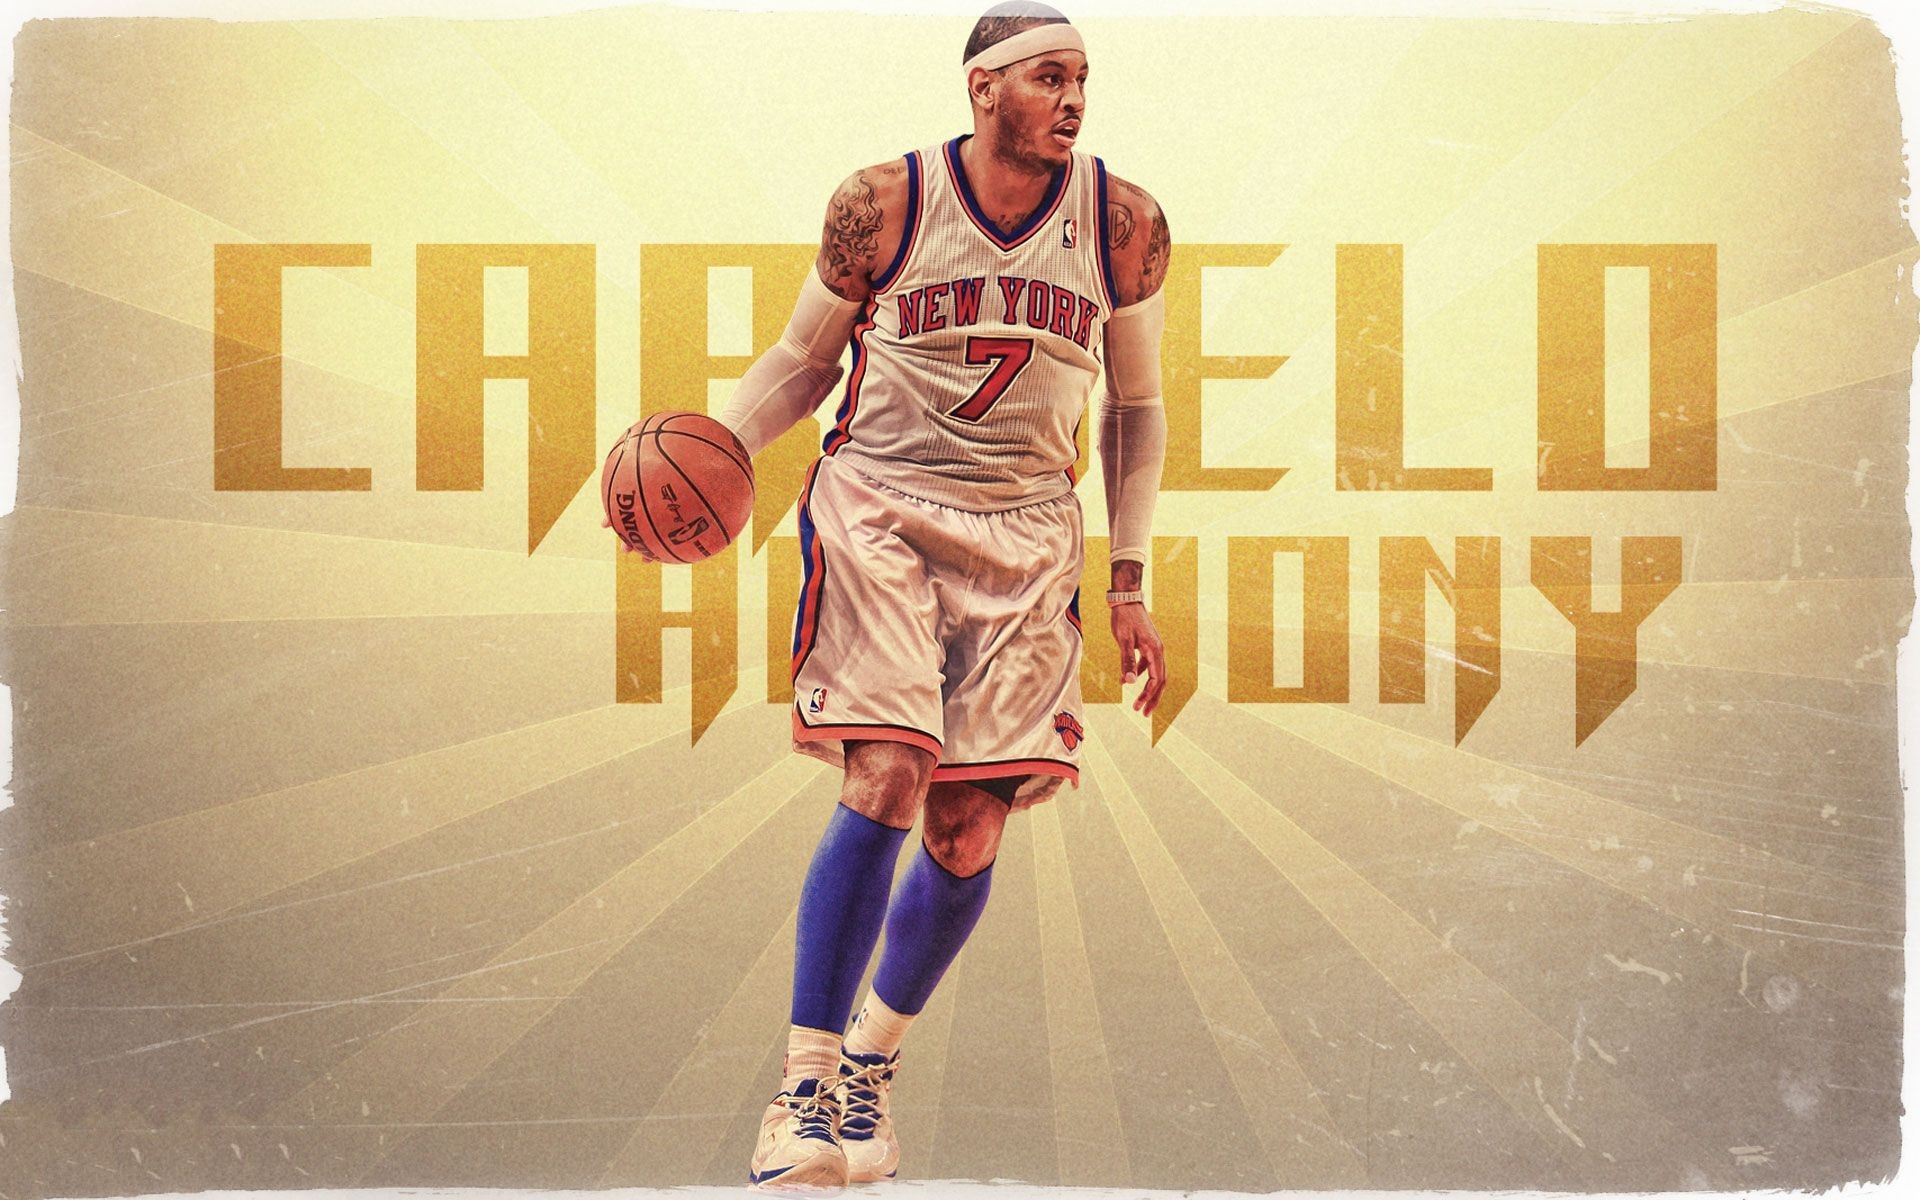 Knicks wallpaper 71 images 30 oklahoma city thunder wallpaper by eir lewton goldwallpapers voltagebd Image collections